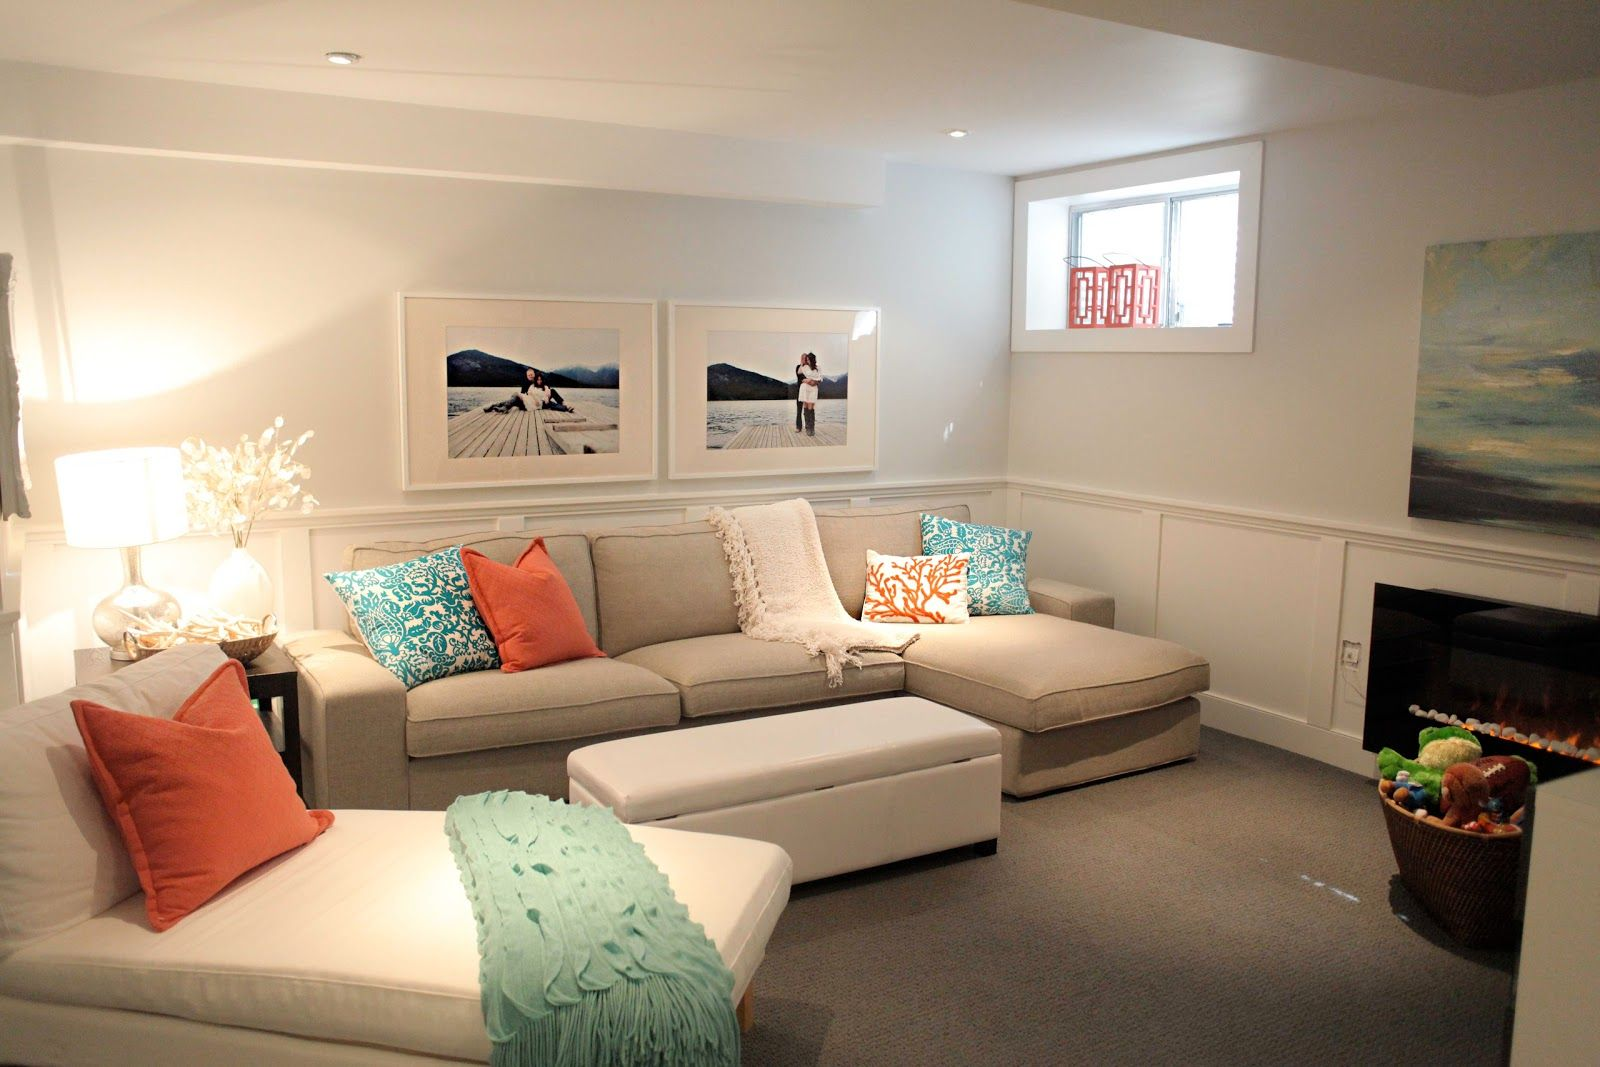 Basement Bedroom Design Endearing Beach House In The City Room Tour Basement Family Roomwall Inspiration